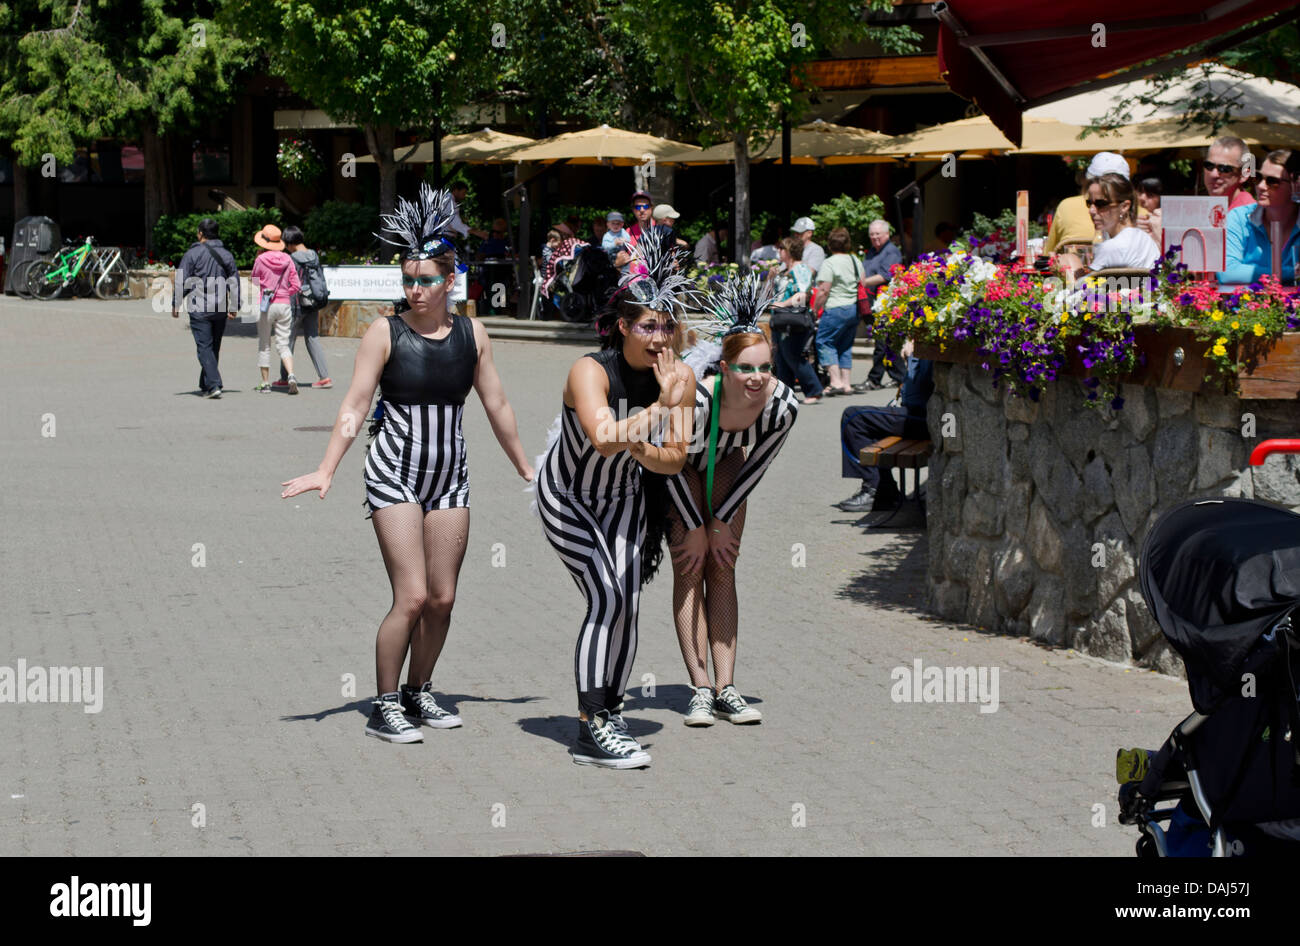 Three comical women street performers entertain visitors to Whistler Village, British Columbia Canada. - Stock Image